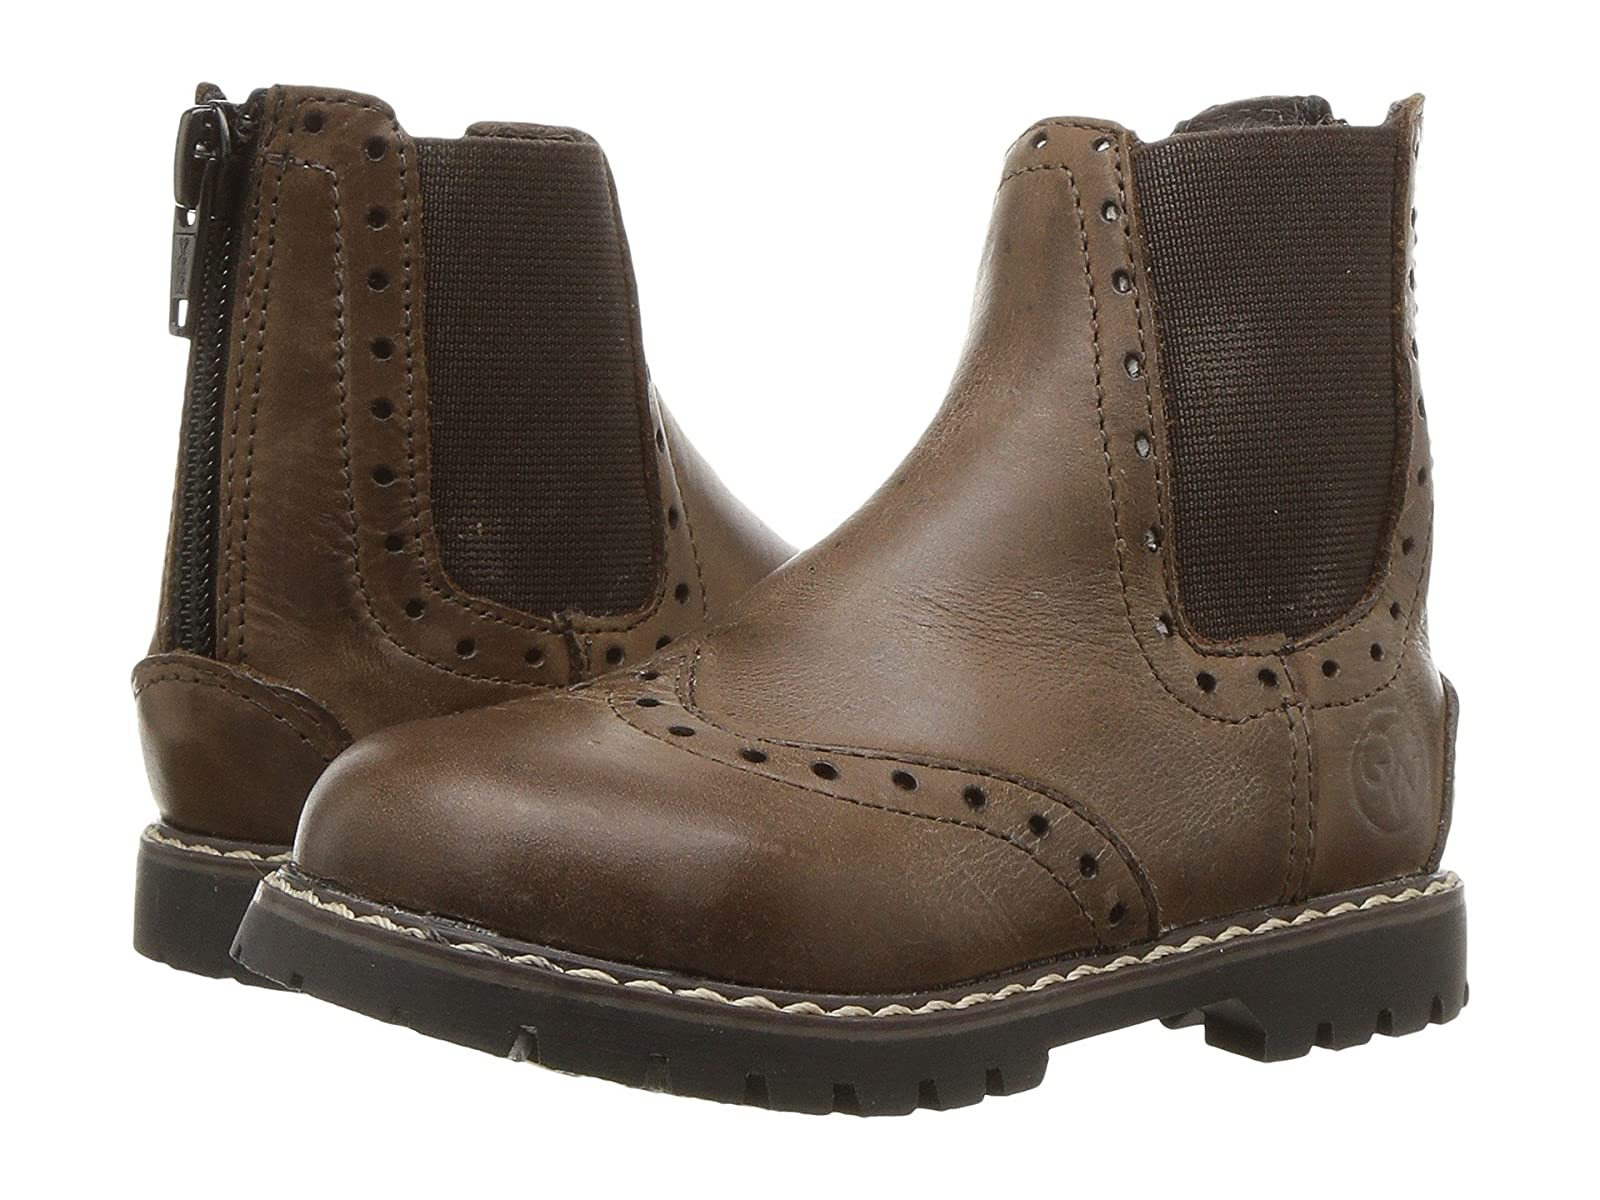 Old West English Kids Boots Bloom (Toddler/Little Kid)Economical and quality shoes